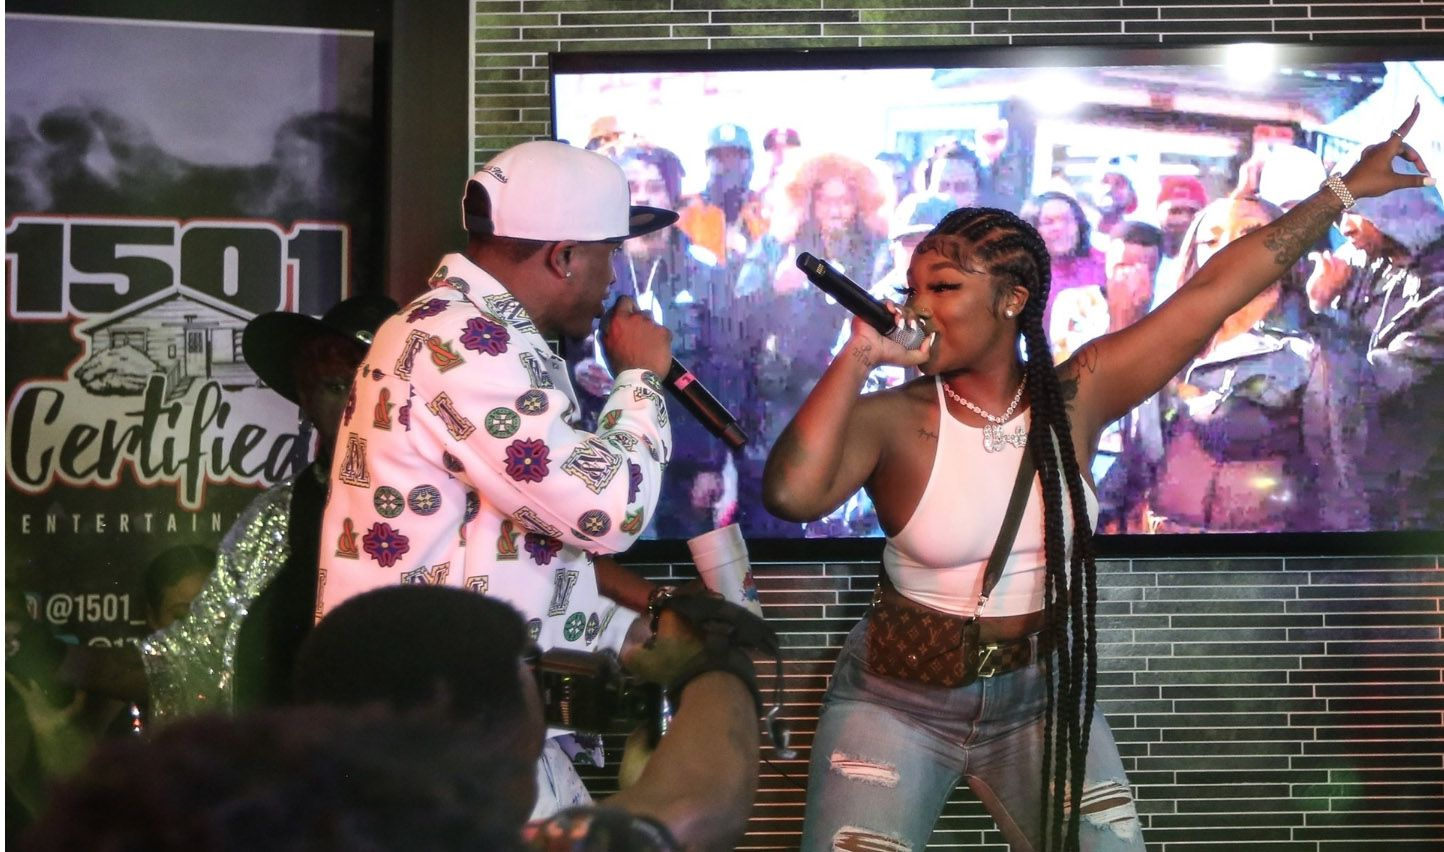 Stunna Bam and DeSoto native Erica Banks perform at The Stunna Bam Listening Session at a private estate in Houston on Feb. 26, 2021.